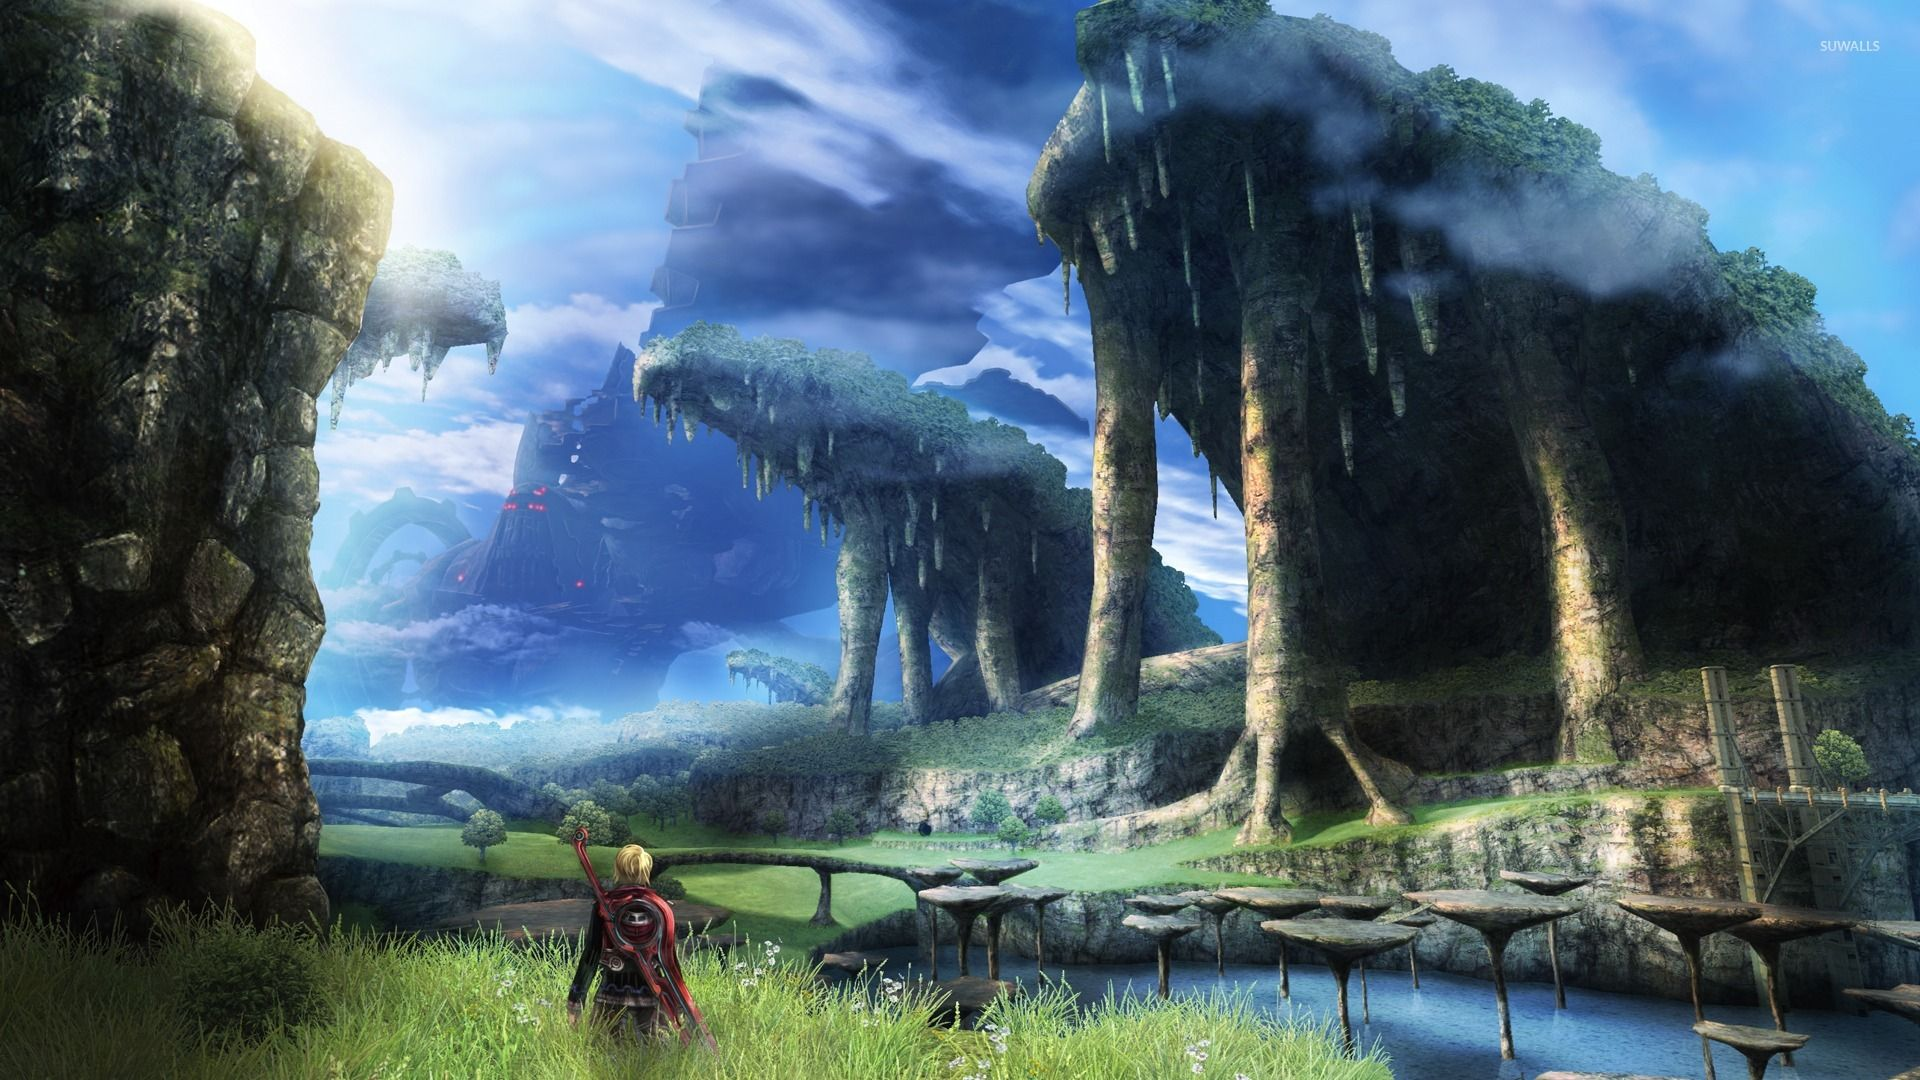 Top Xenoblade Chronicles Hq Desktop Wallpaper Xenoblade Chronicles New Hd Pic Wallpaper